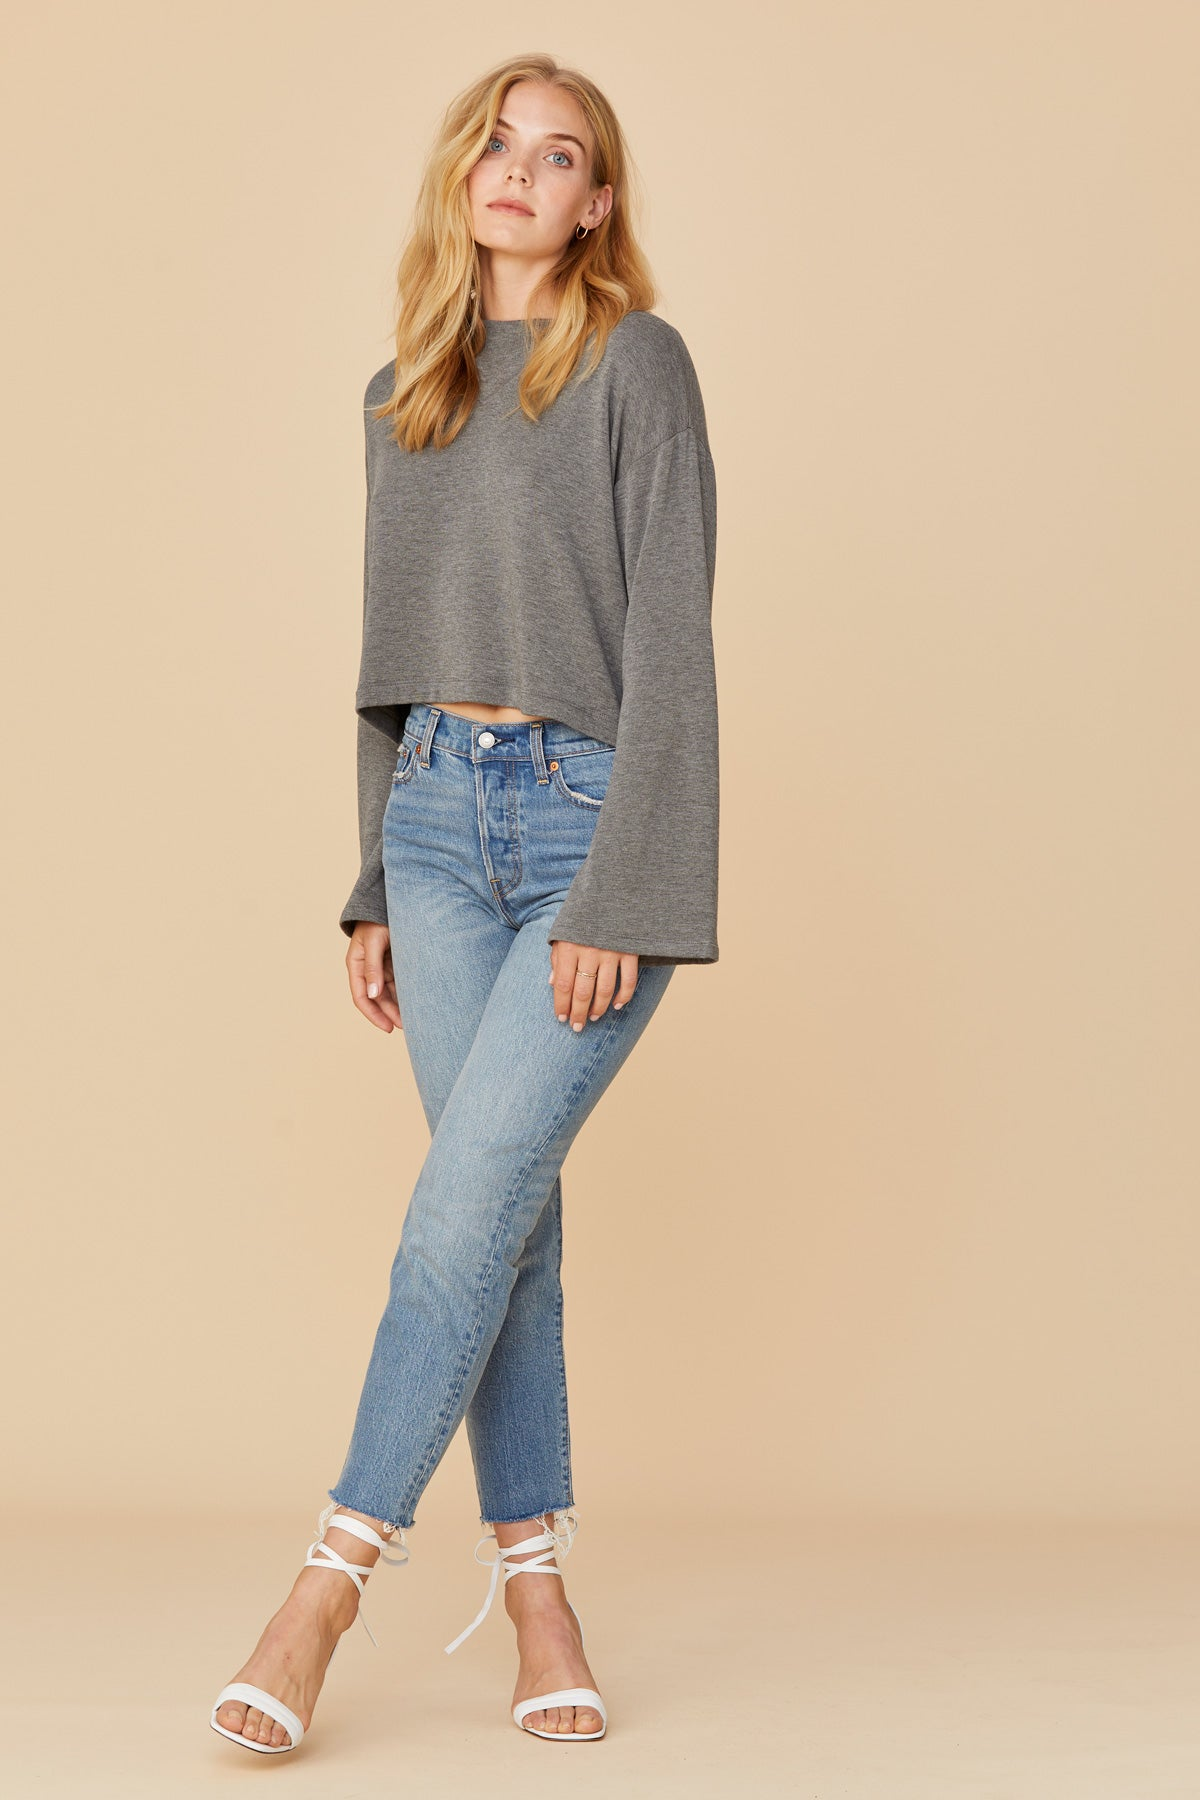 LNA Grey Abby Cropped Sweatshirt